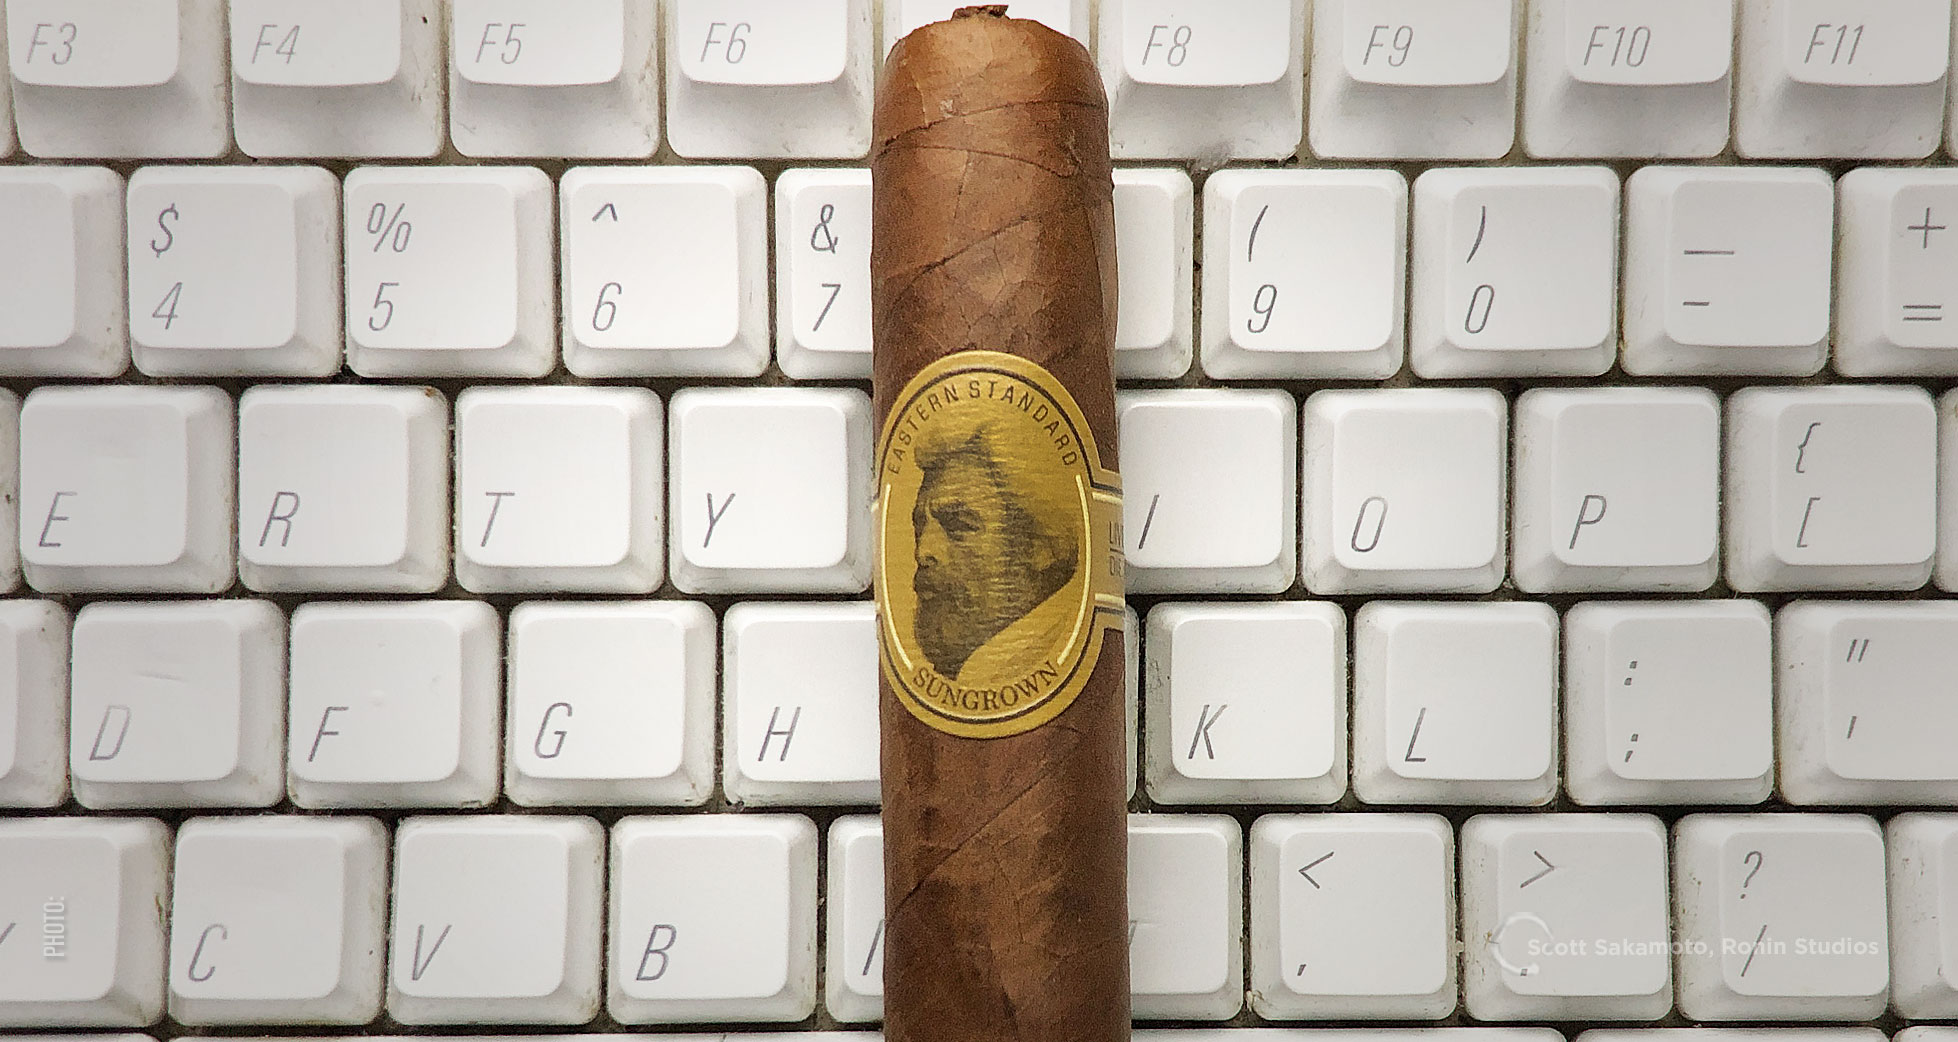 Caldwell, Caldwell Cigars, Dominican Republic, Eastern Standard, Habano, Hybrid Mexican